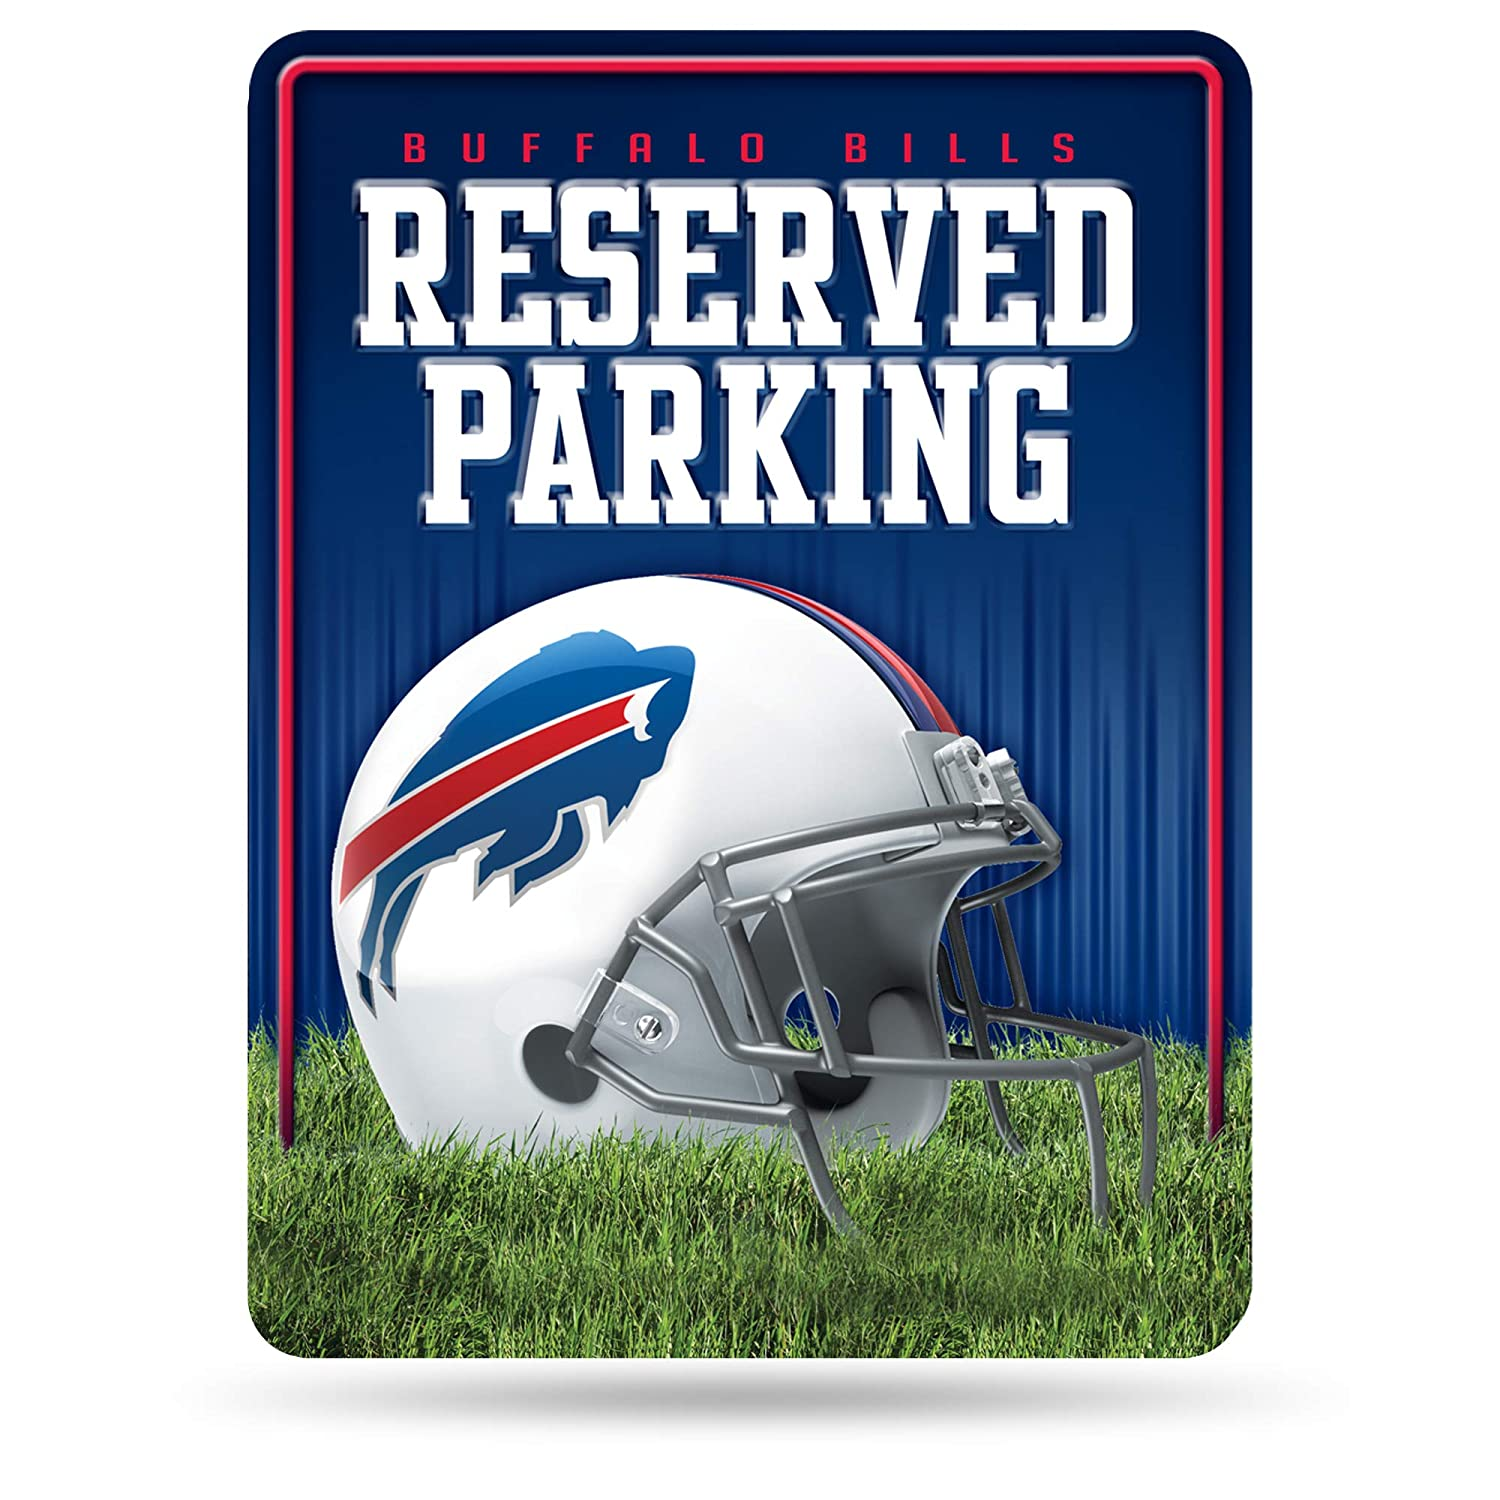 NFL Buffalo Bills 8 Inch by 11 Inch Metal Parking Sign Décor